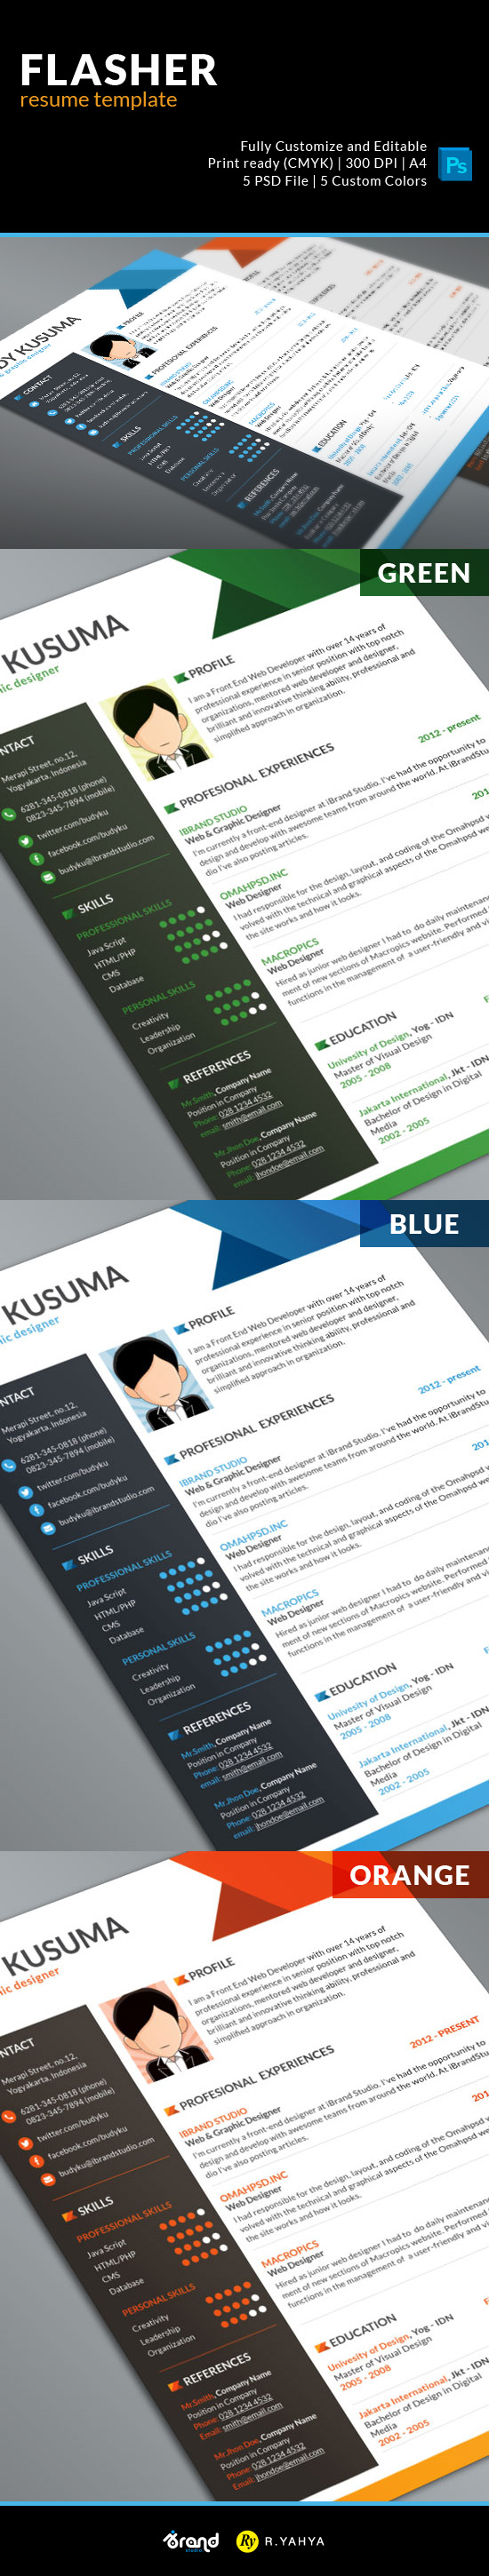 Free Resume Template: Flasher - 3 Colors (PSD) | Bewerbung ...